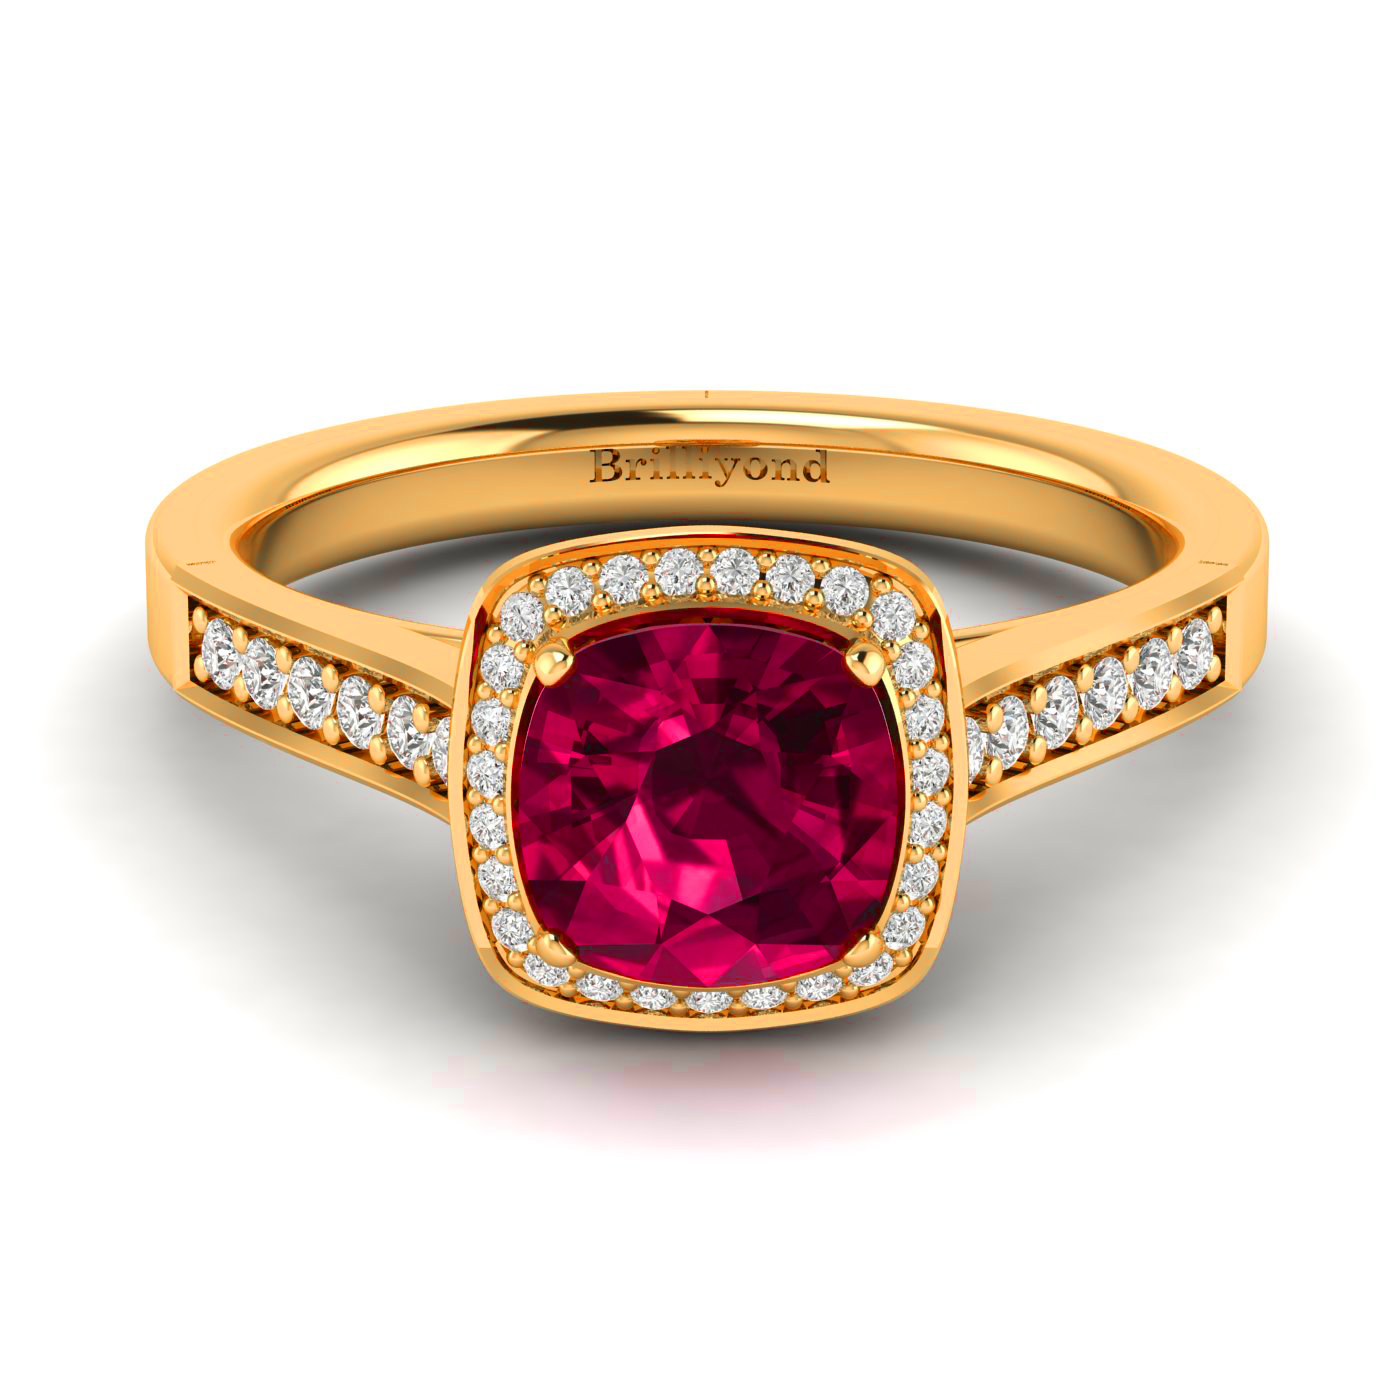 Cushion Cut Red Ruby with Accent Diamond Halo on Yellow Gold